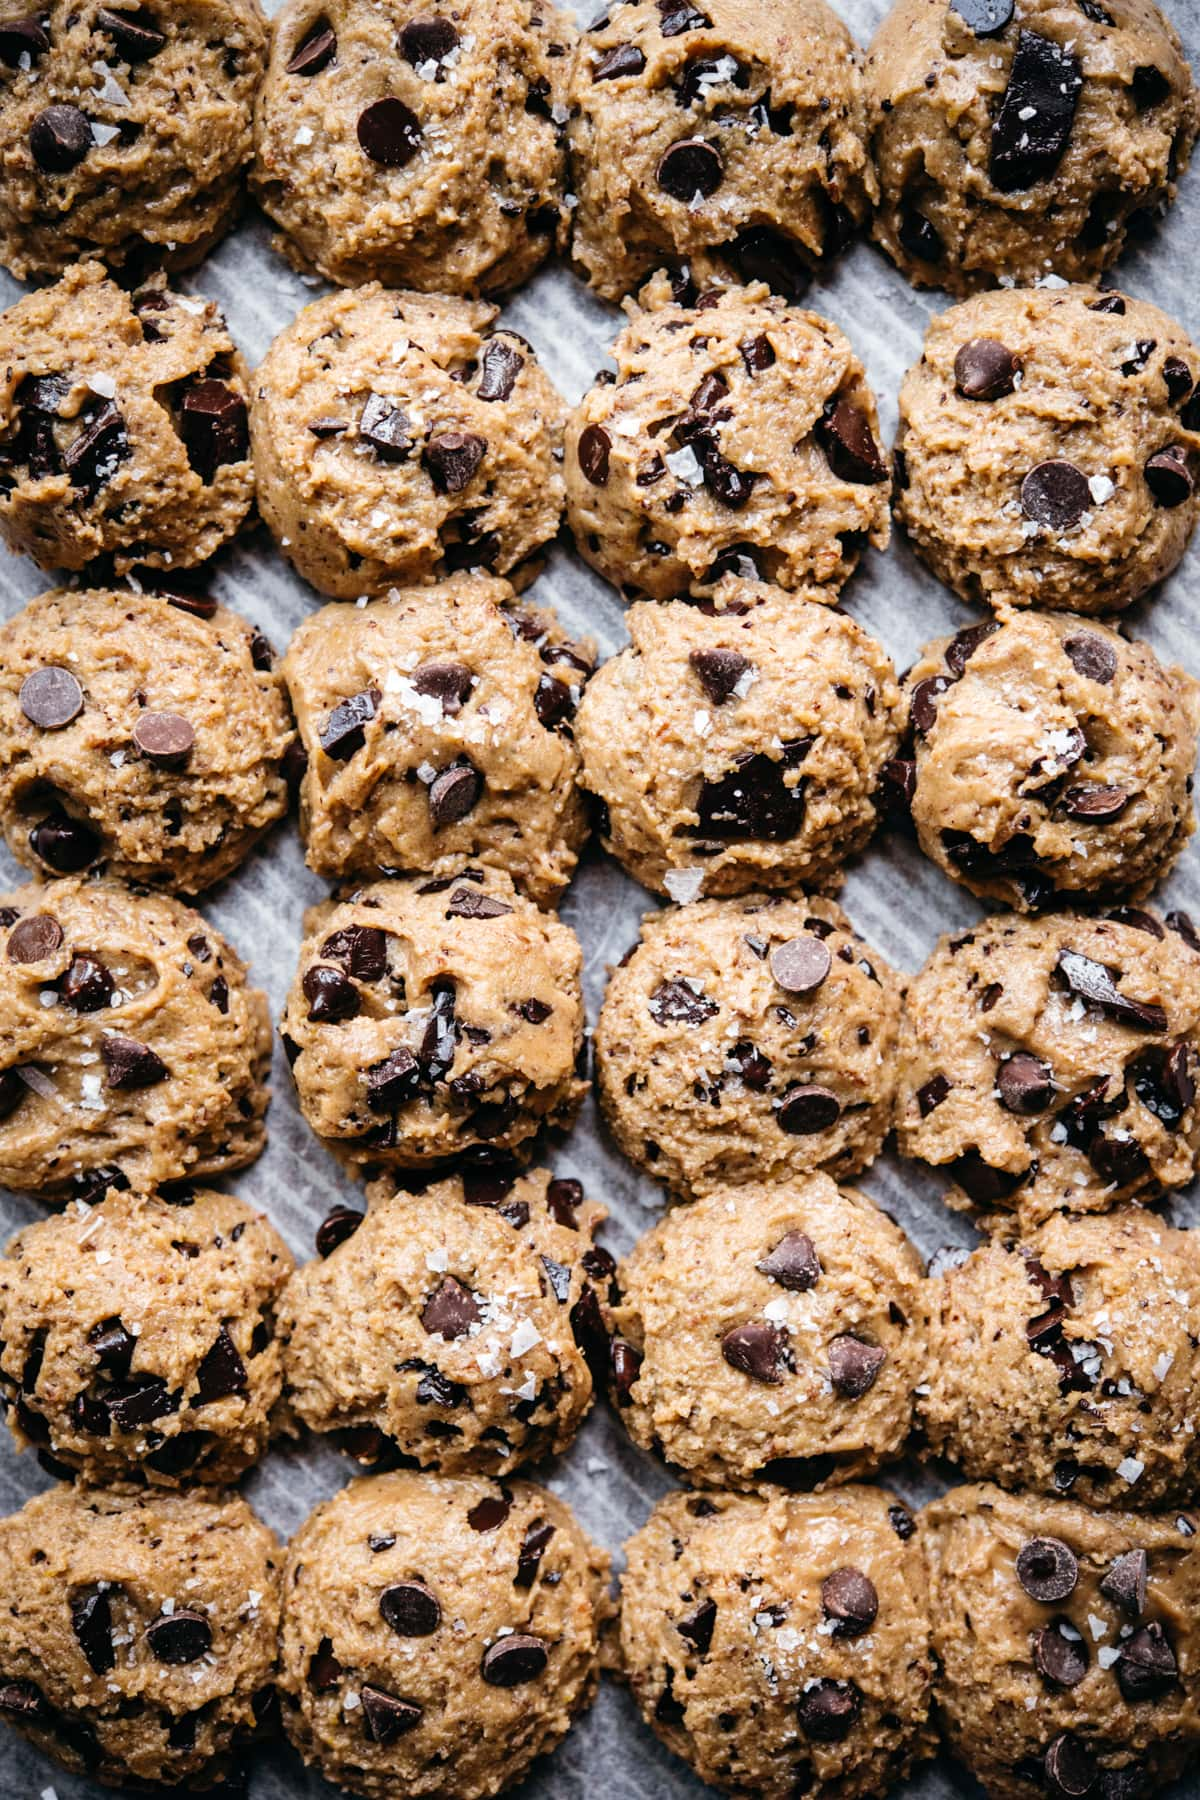 overhead view of vegan and gluten free chocolate chip cookies dough balls on parchment paper.